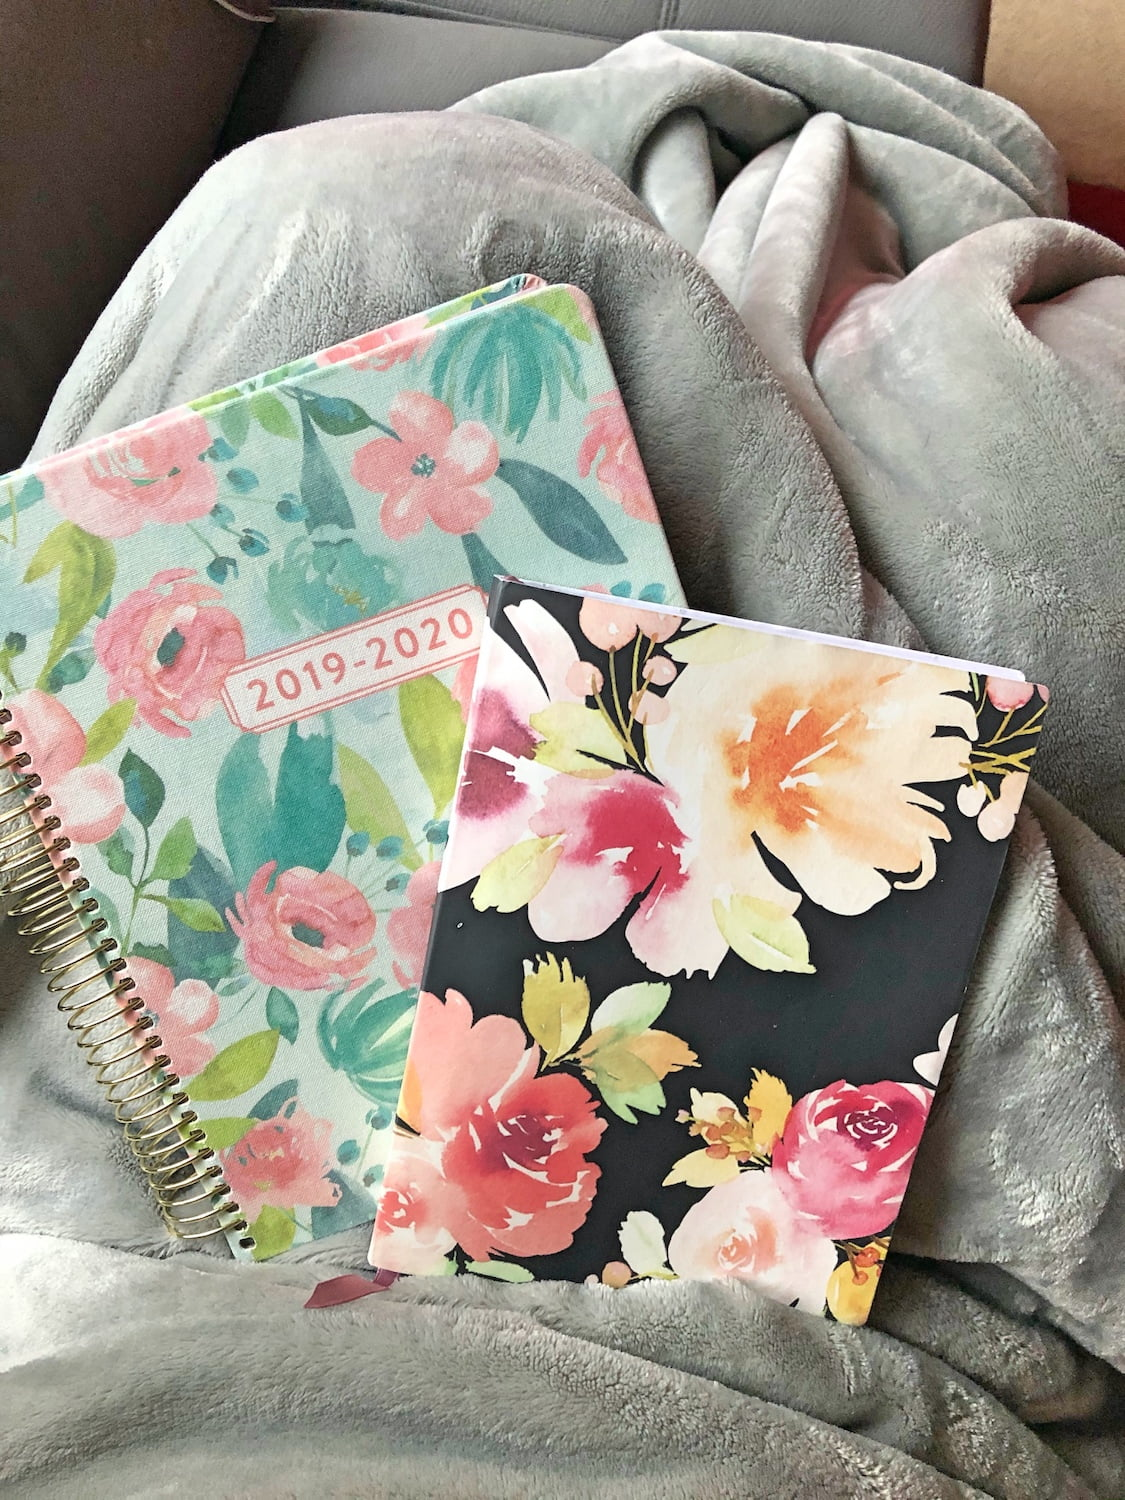 Adventures of a Notebook - Planner and Notebook in Lap